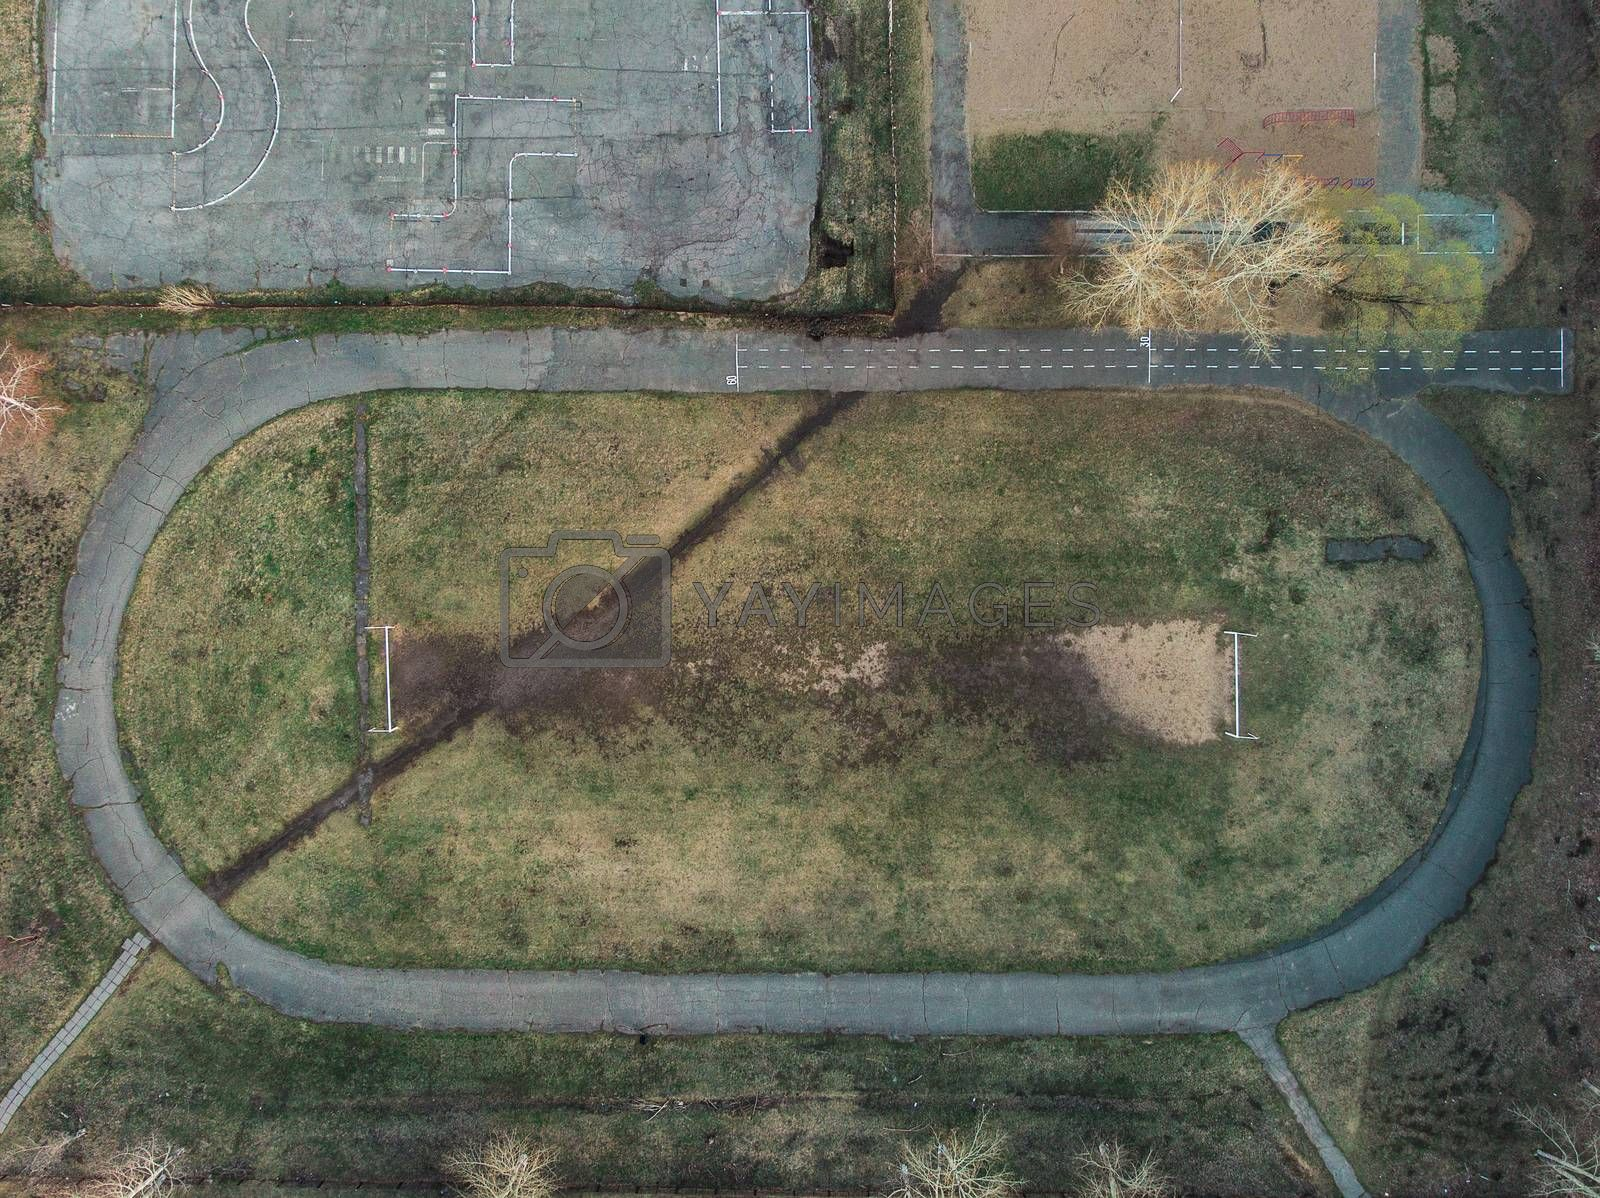 Old Football field in a beauty day. Aerial view.